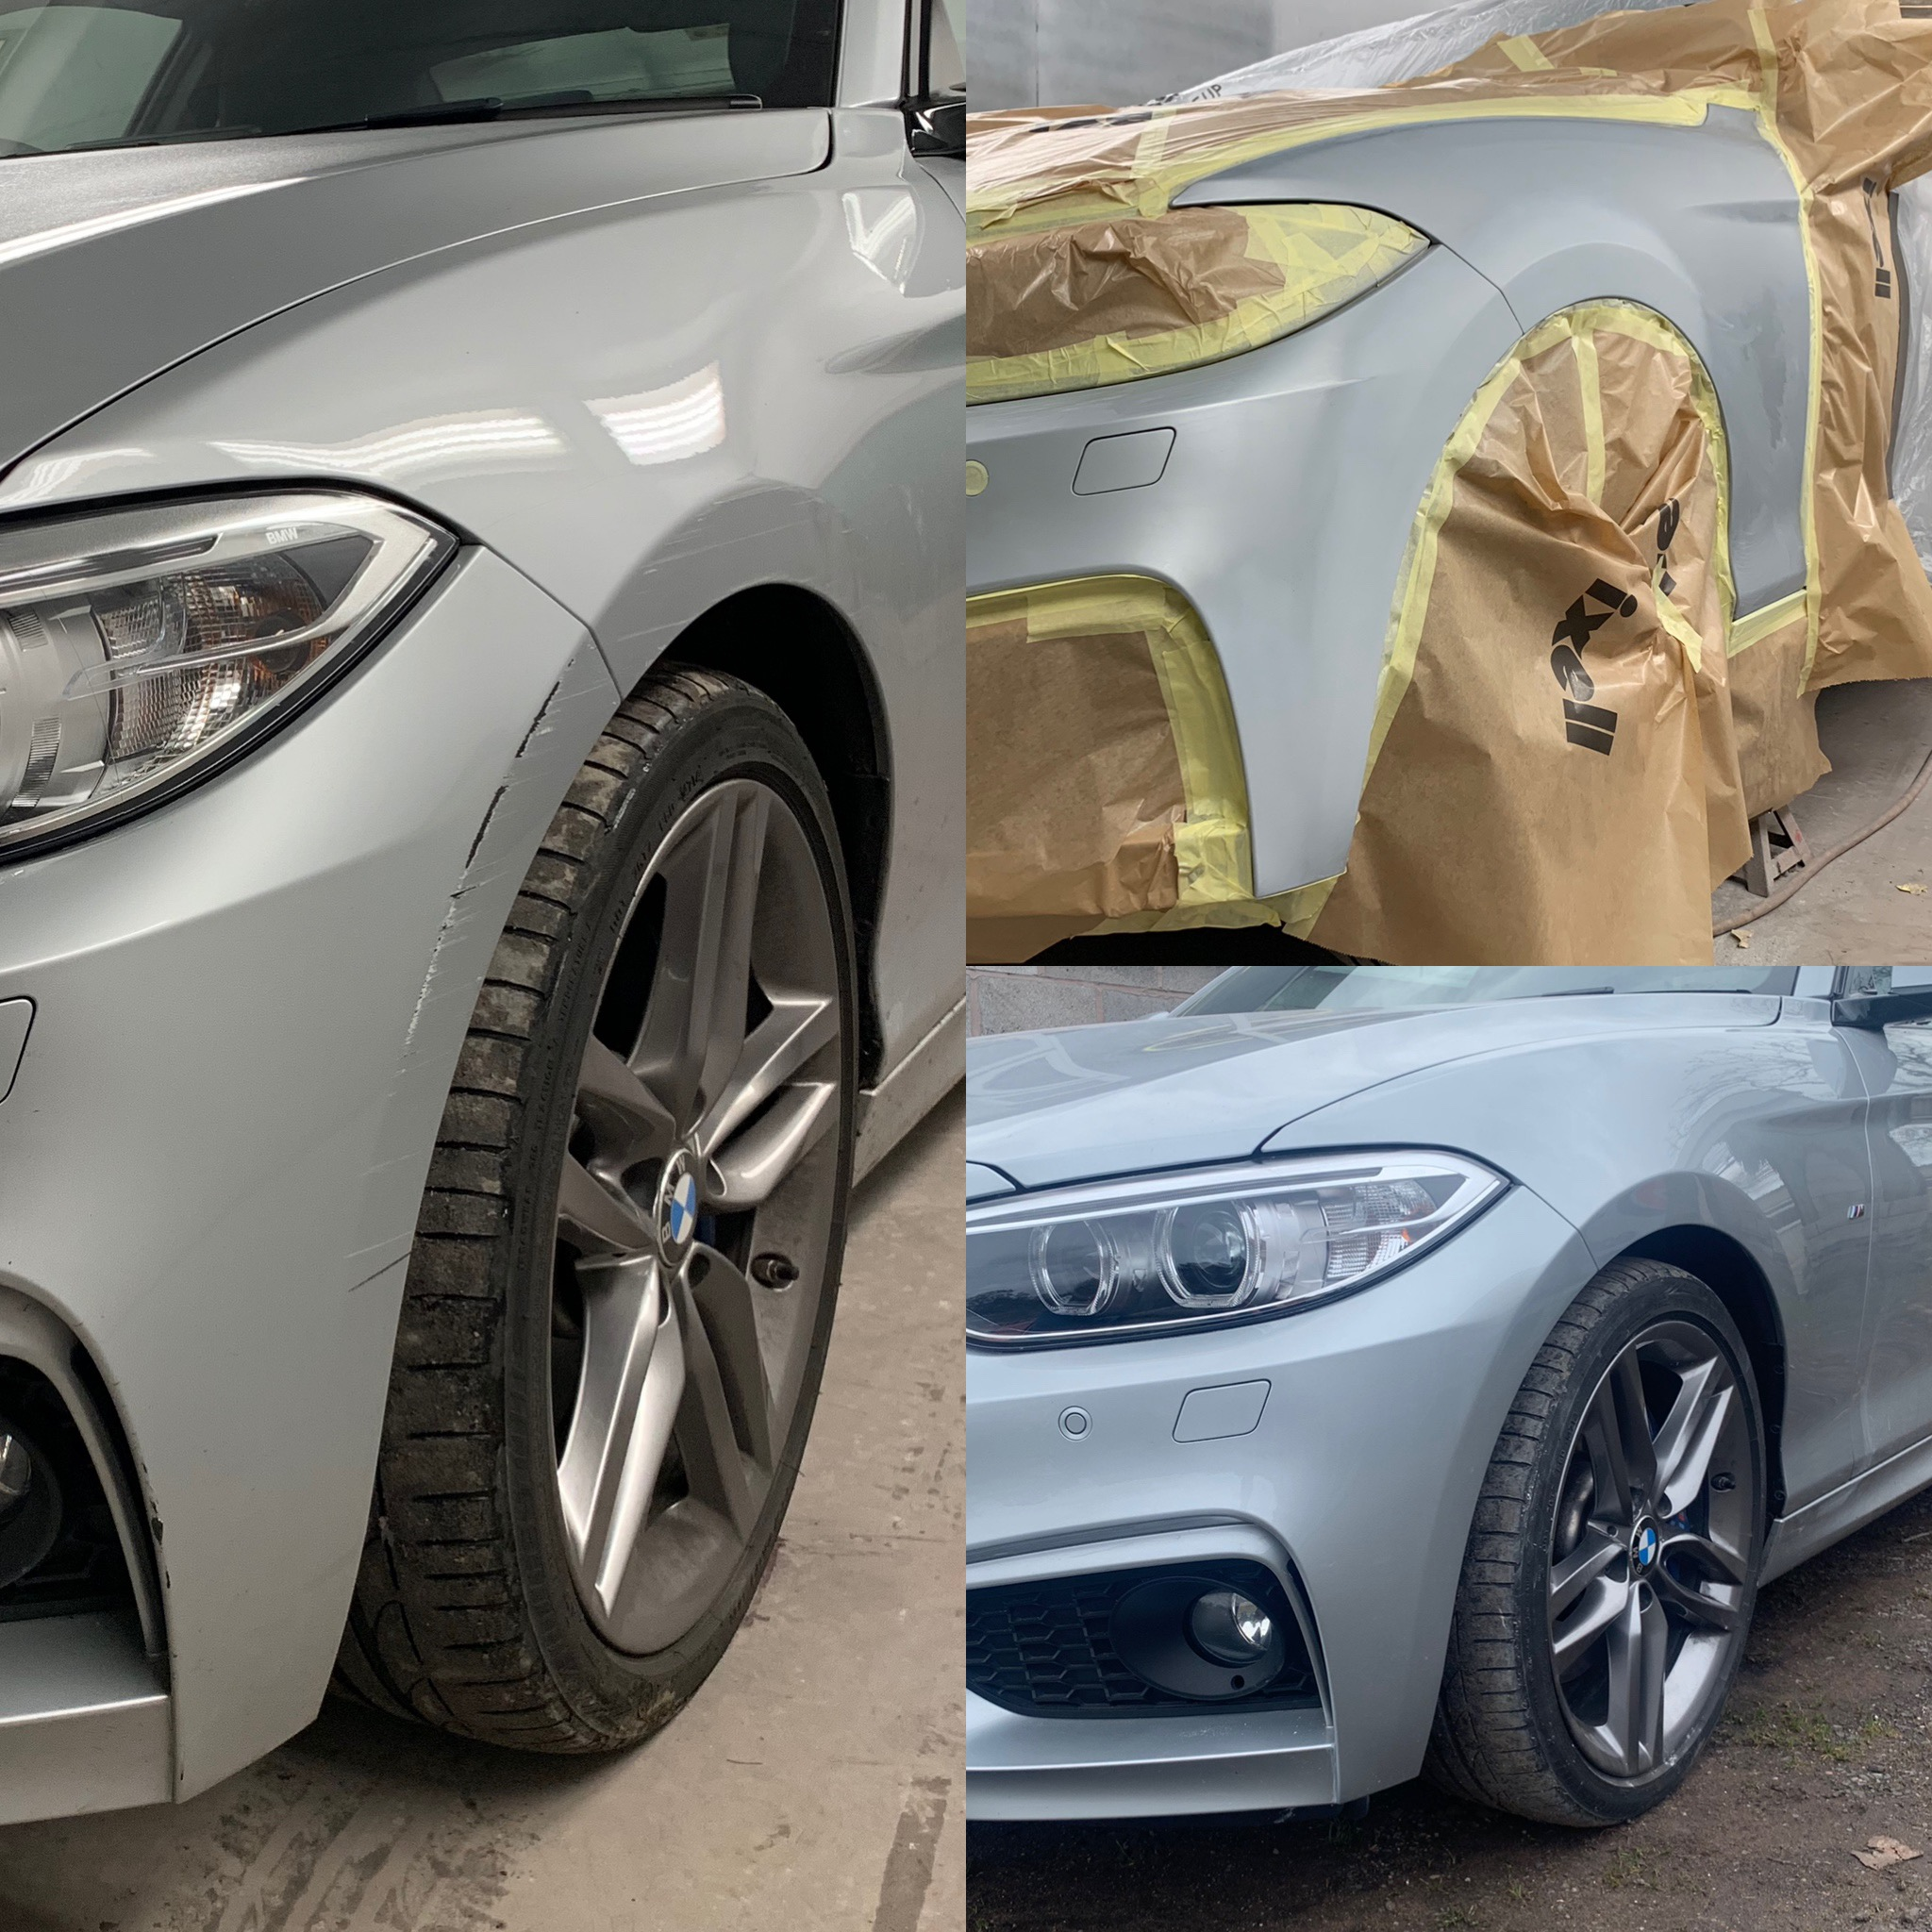 BMW F. Bumper Scuff Repair